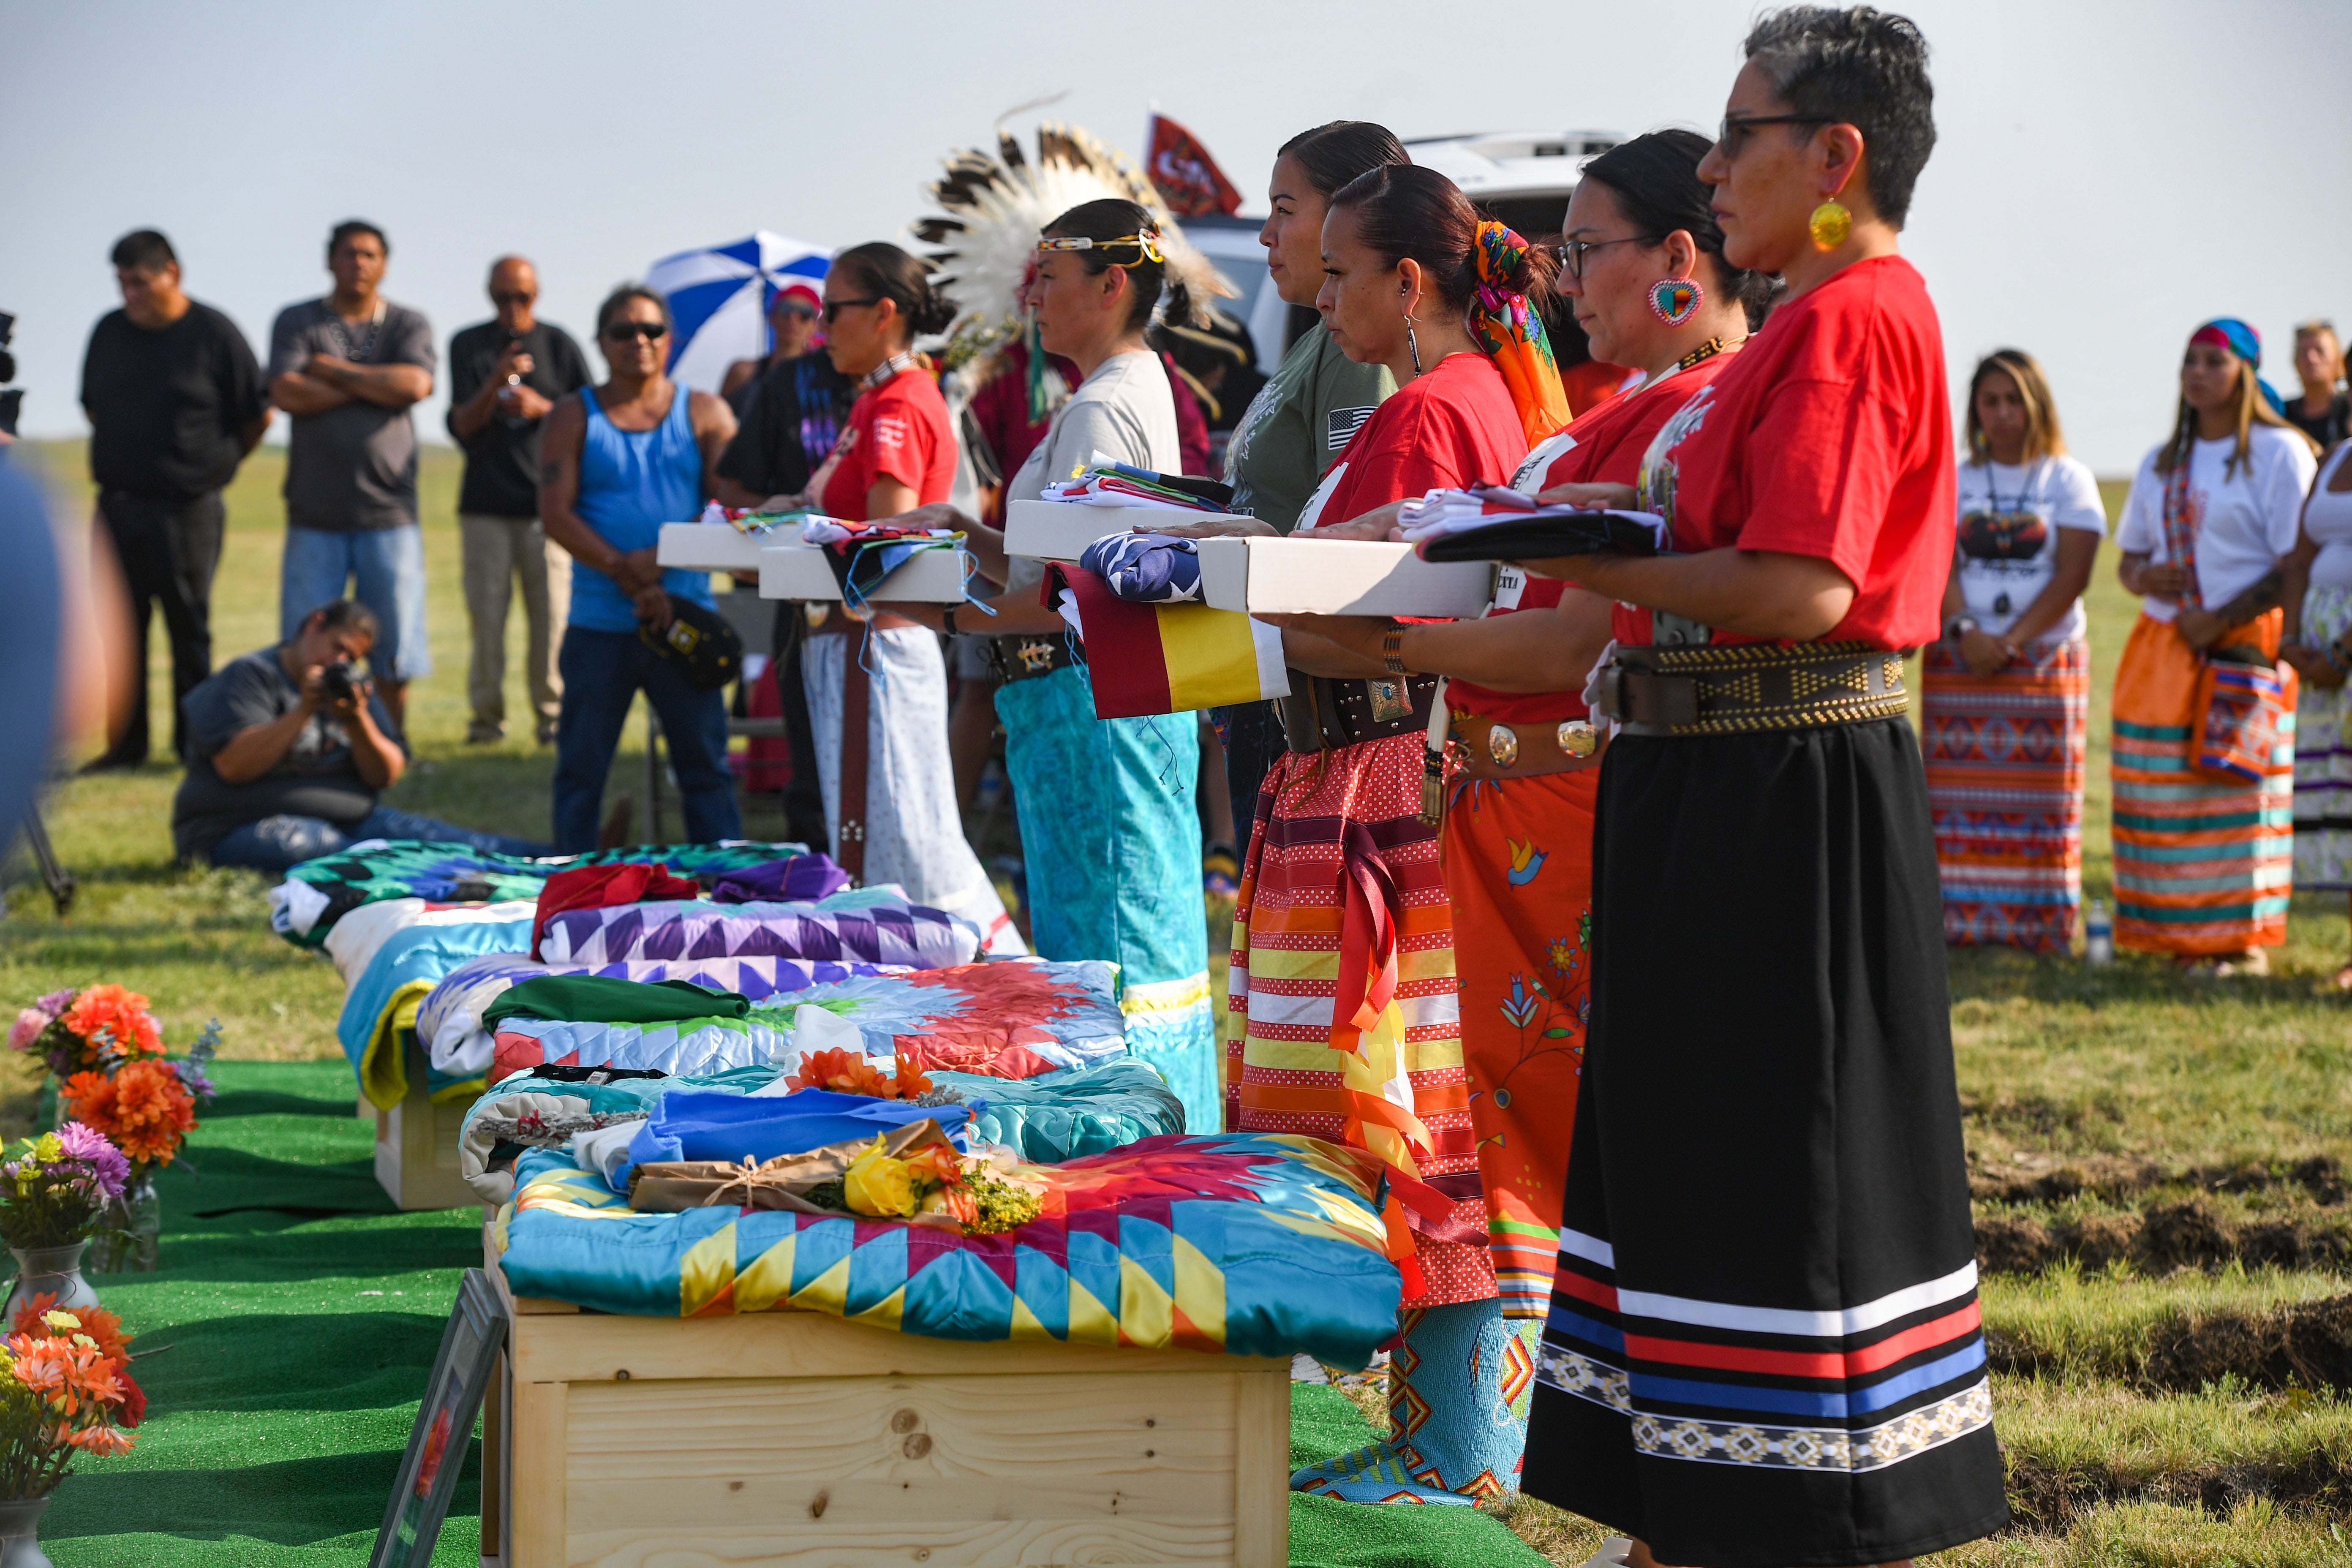 Will rest in the quiet : Rosebud Sioux children, taken to a boarding school over 140 years ago, finally laid to rest